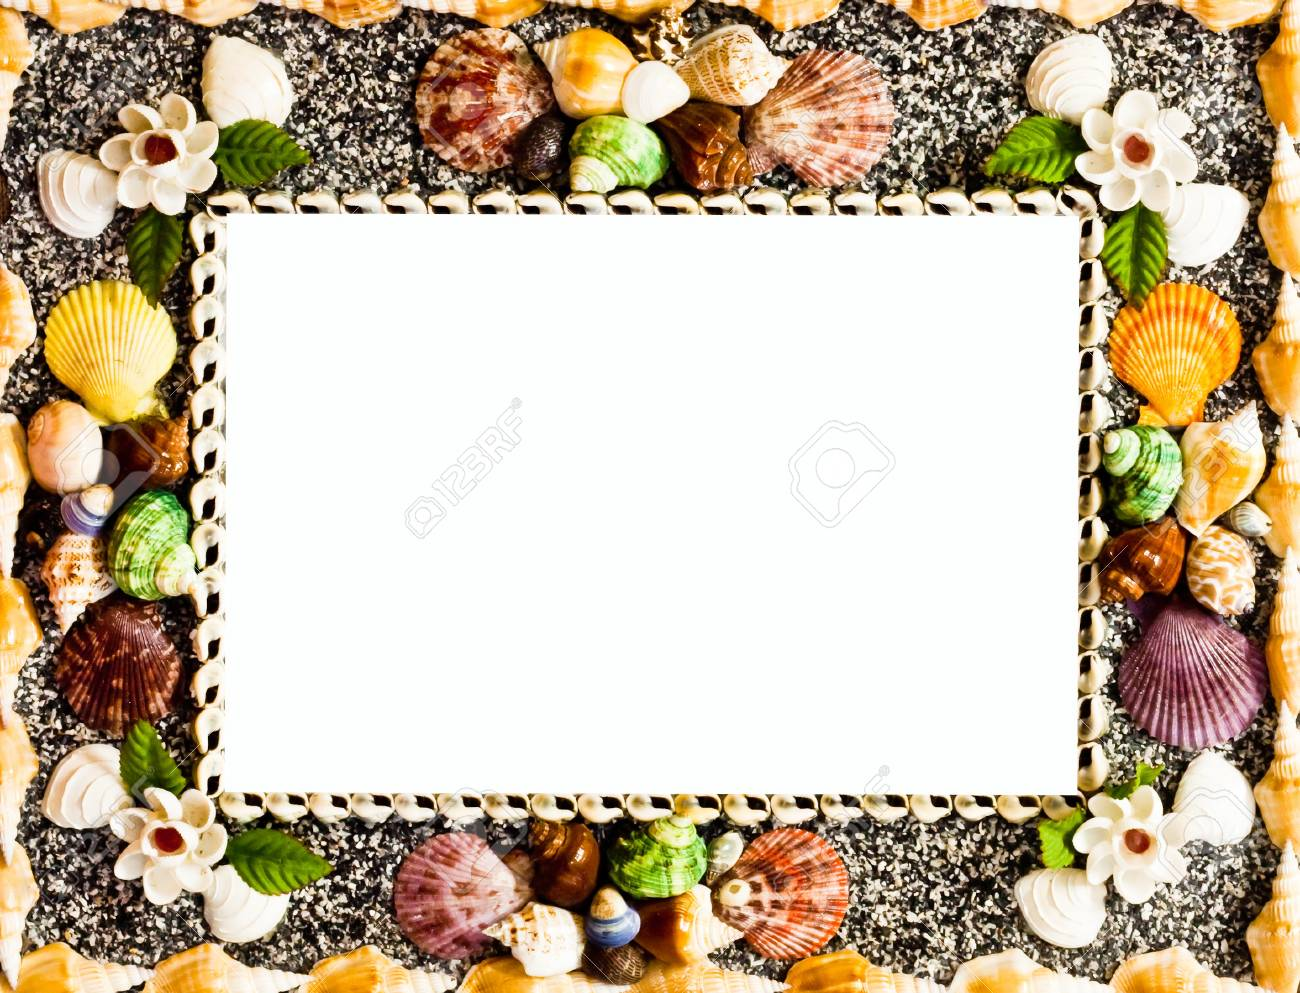 Frame used shells in many colors sizes to make up stock photo frame used shells in many colors sizes to make up stock photo 20492880 jeuxipadfo Choice Image